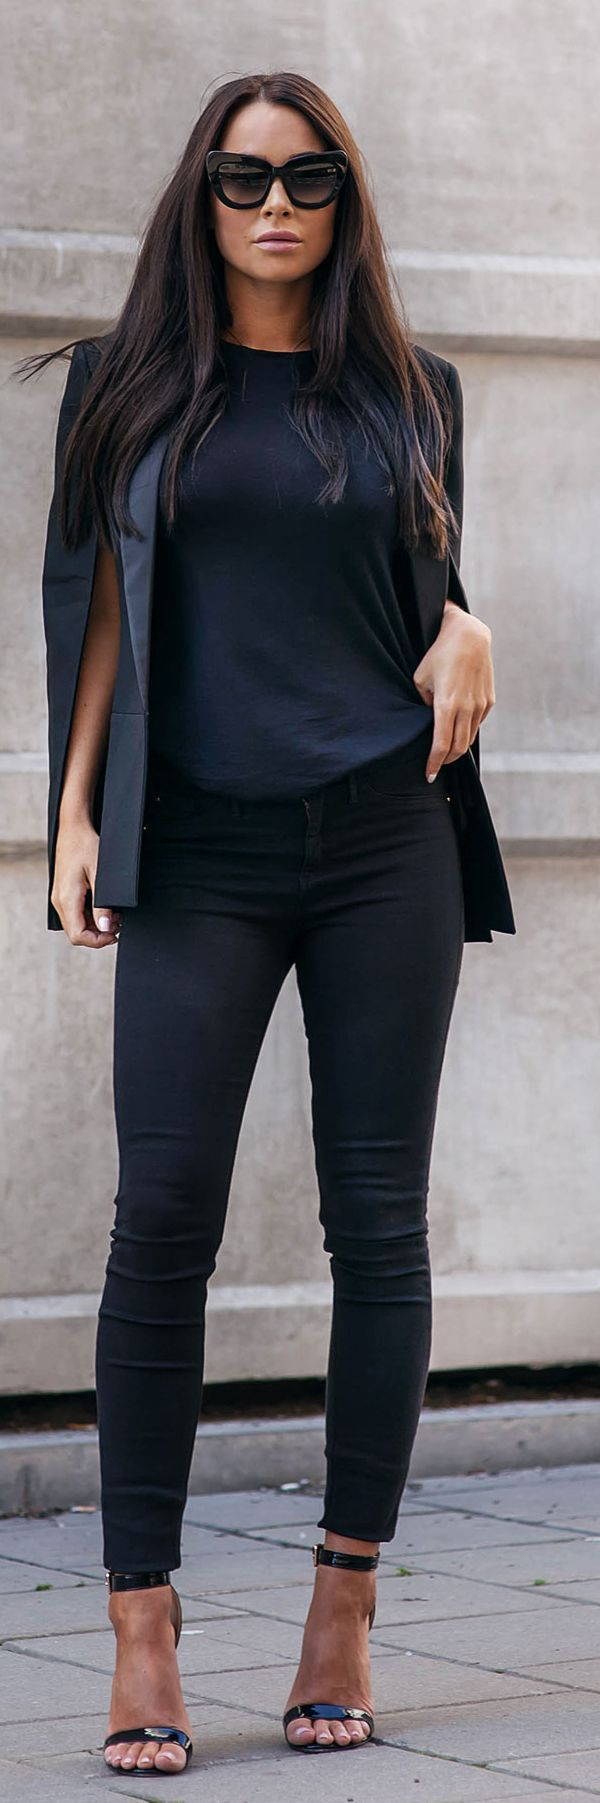 Total Black Cape Jacket Chic Outfit Idea                                                                             Source